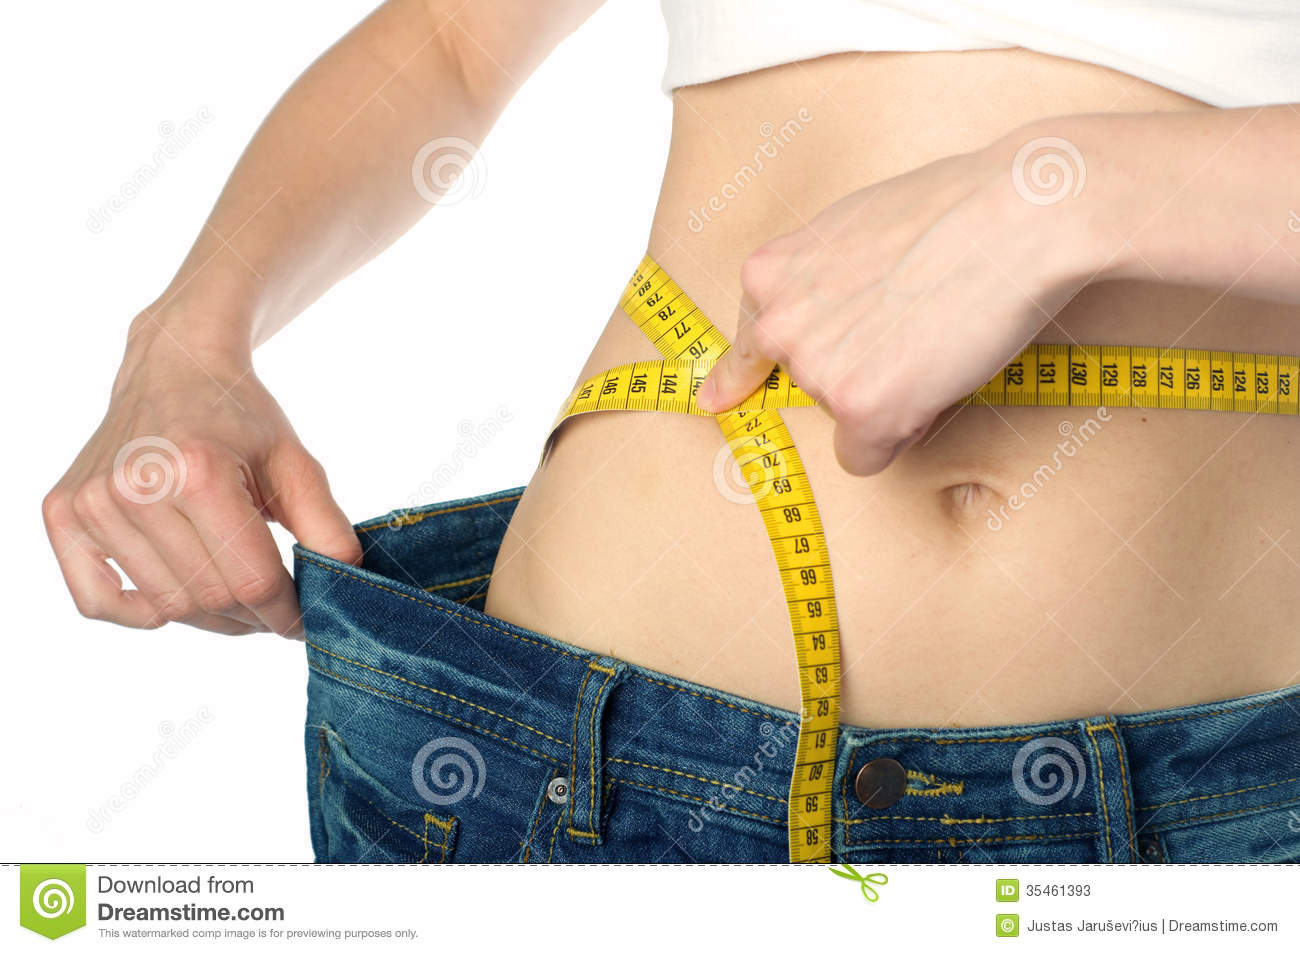 calories lose weight photo - 1